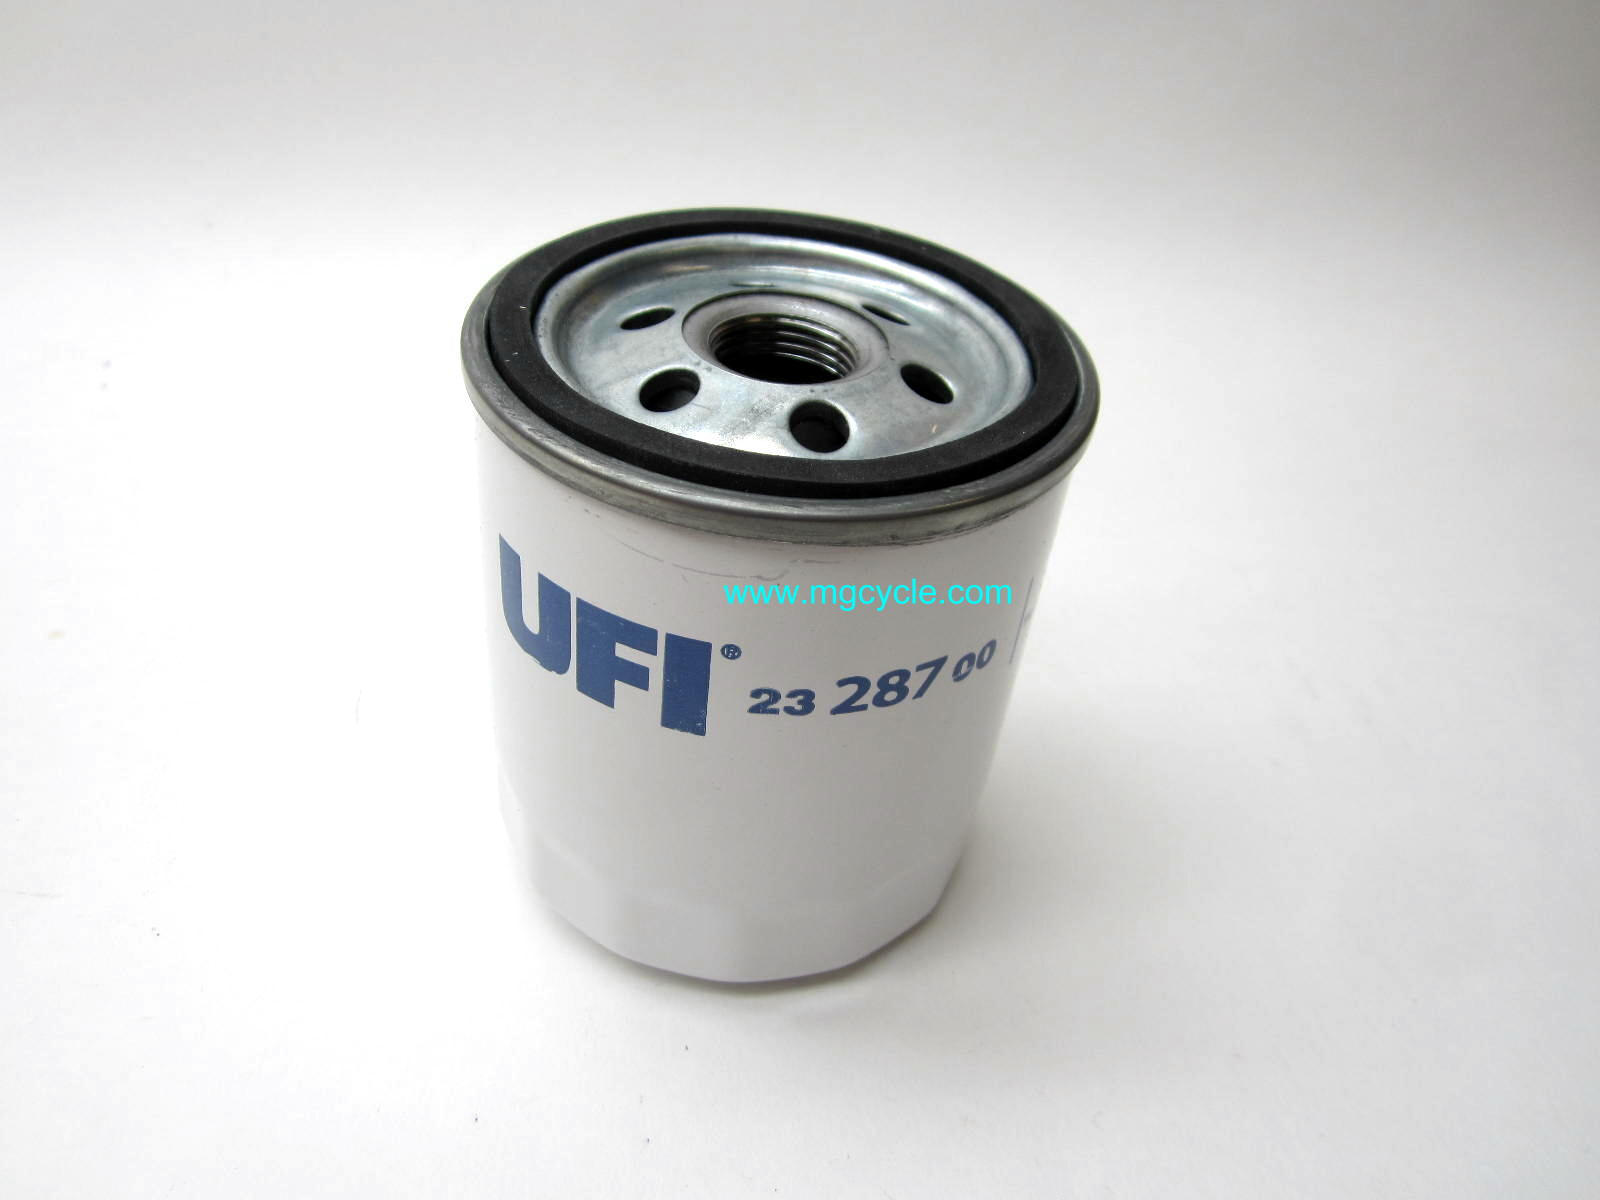 UFI oil filter, 1100cc and 1200cc plus Daytona and Centauro